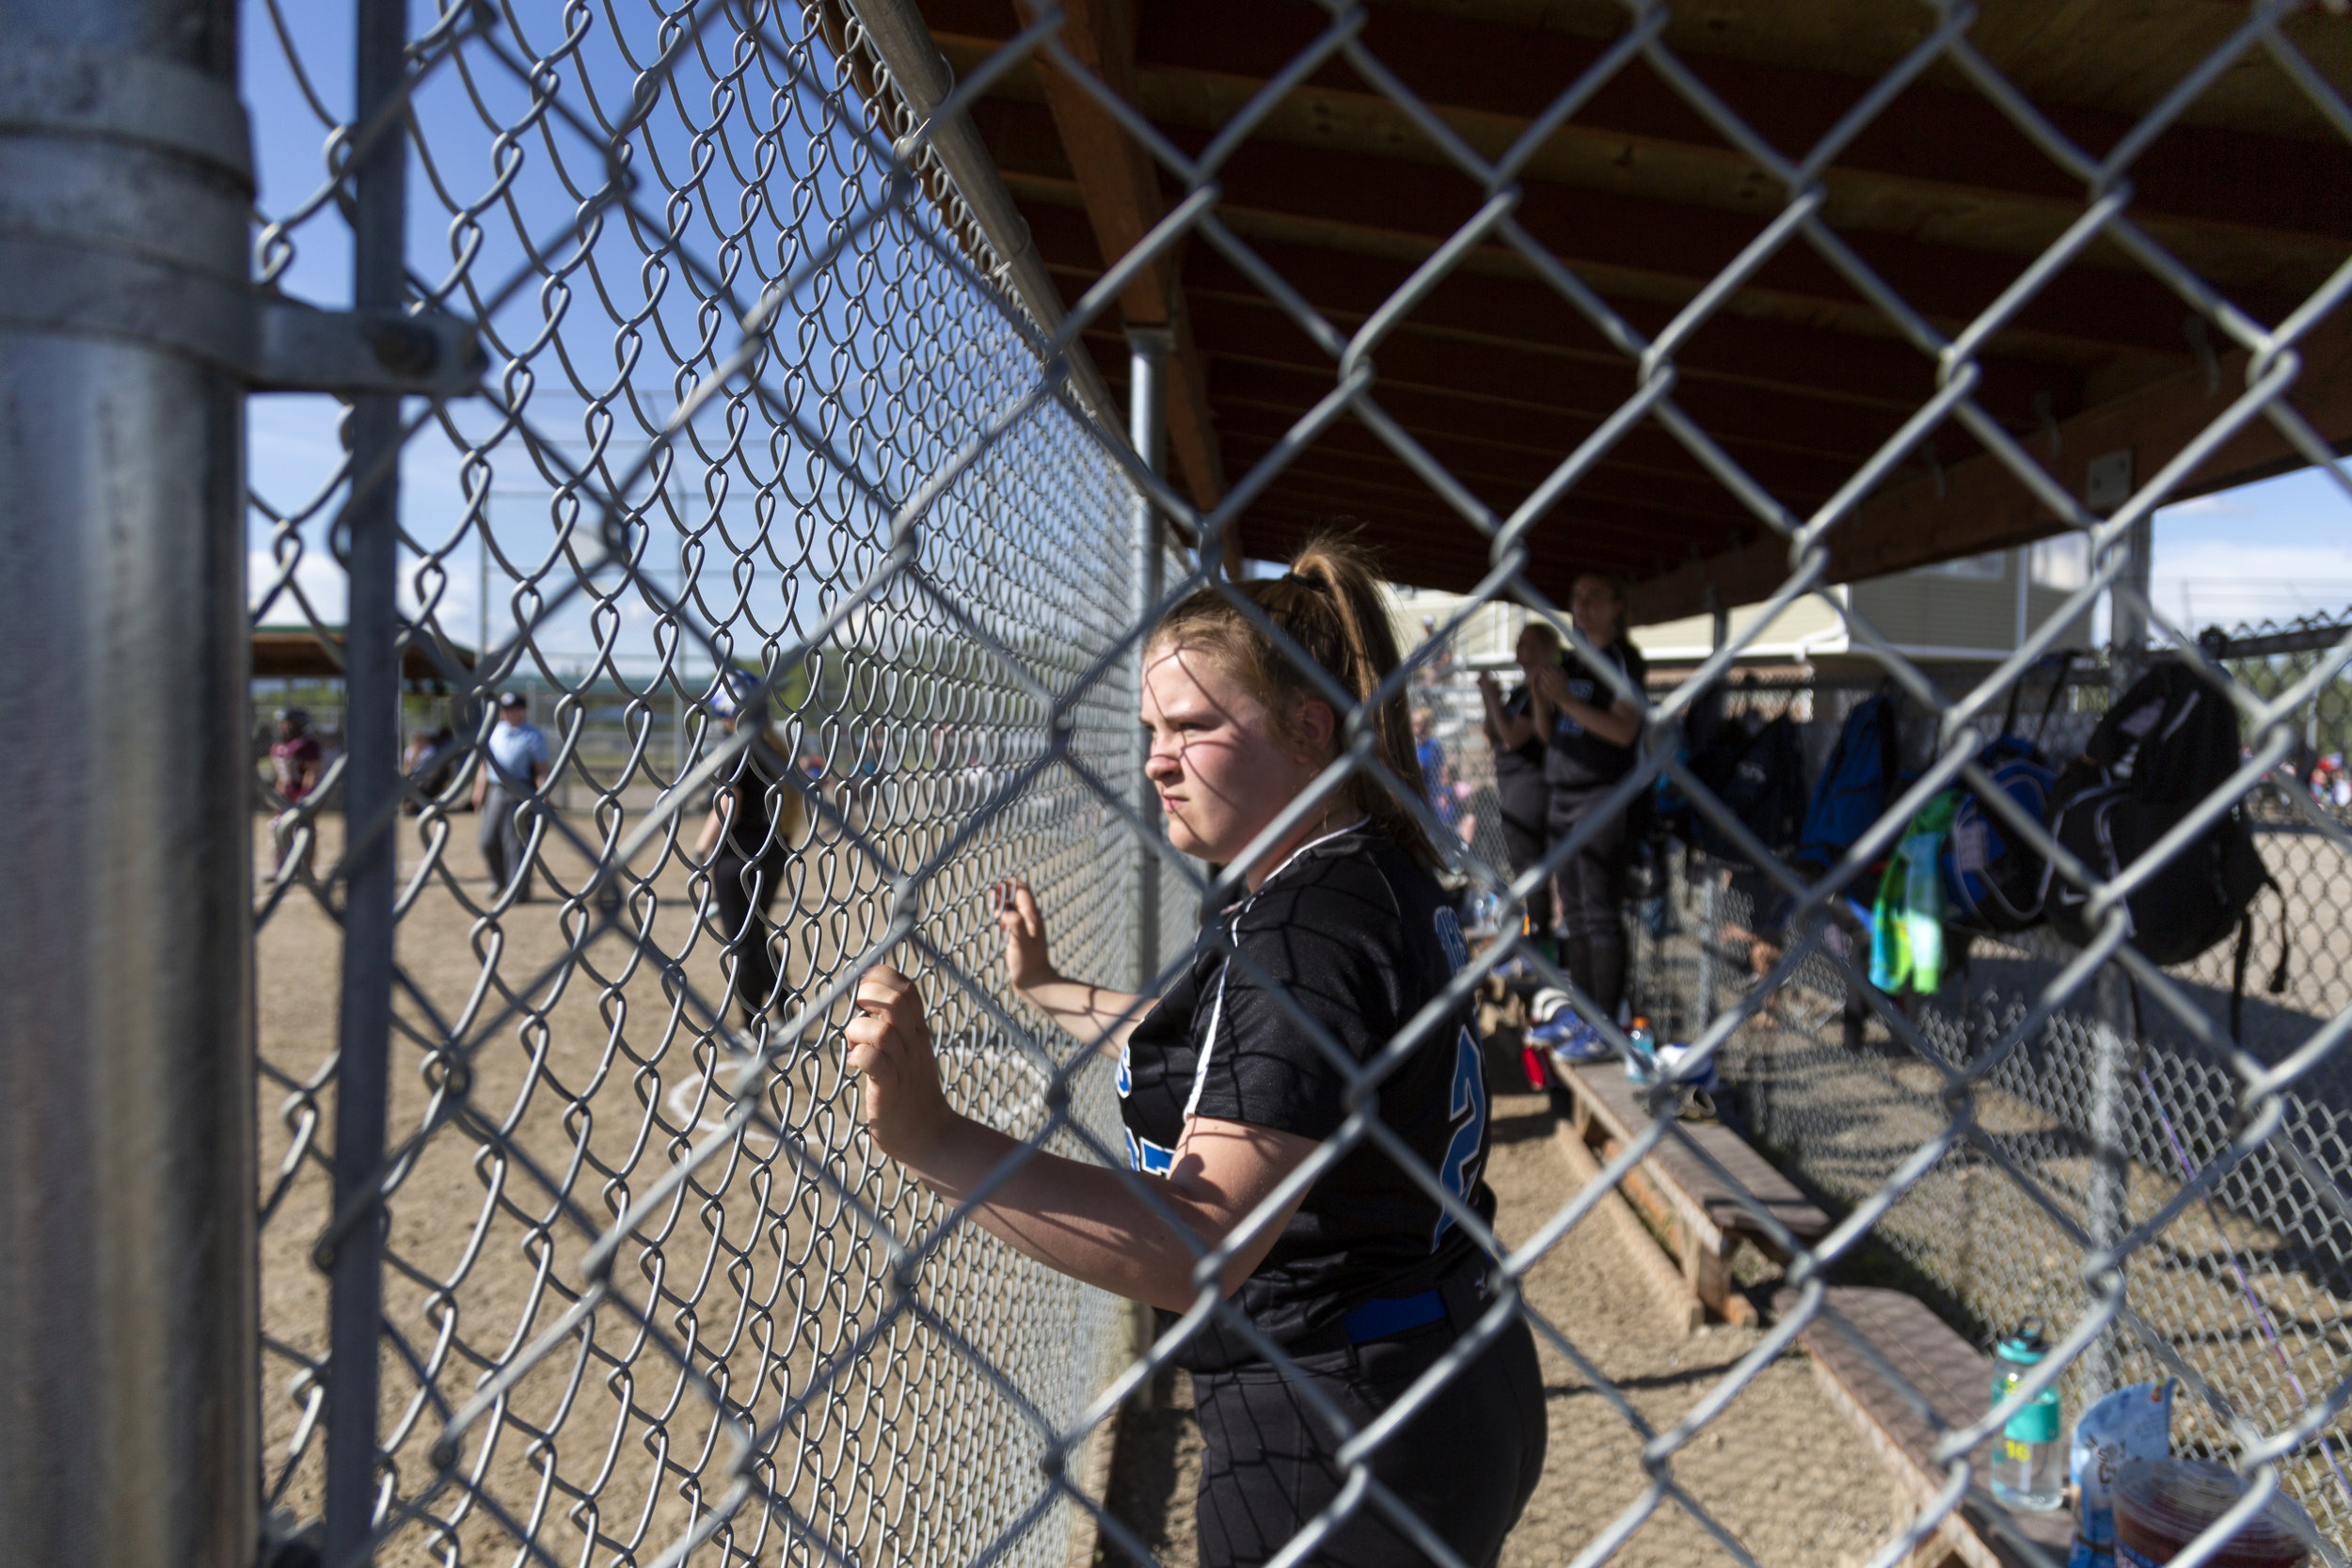 #27 Morgan Poole watches her teammates on the field in the Thunder Mountain vs Ketchikan double elimination championship game on Saturday, June 2nd in Fairbanks, AK. Sarah Manriquez/Juneau Empire